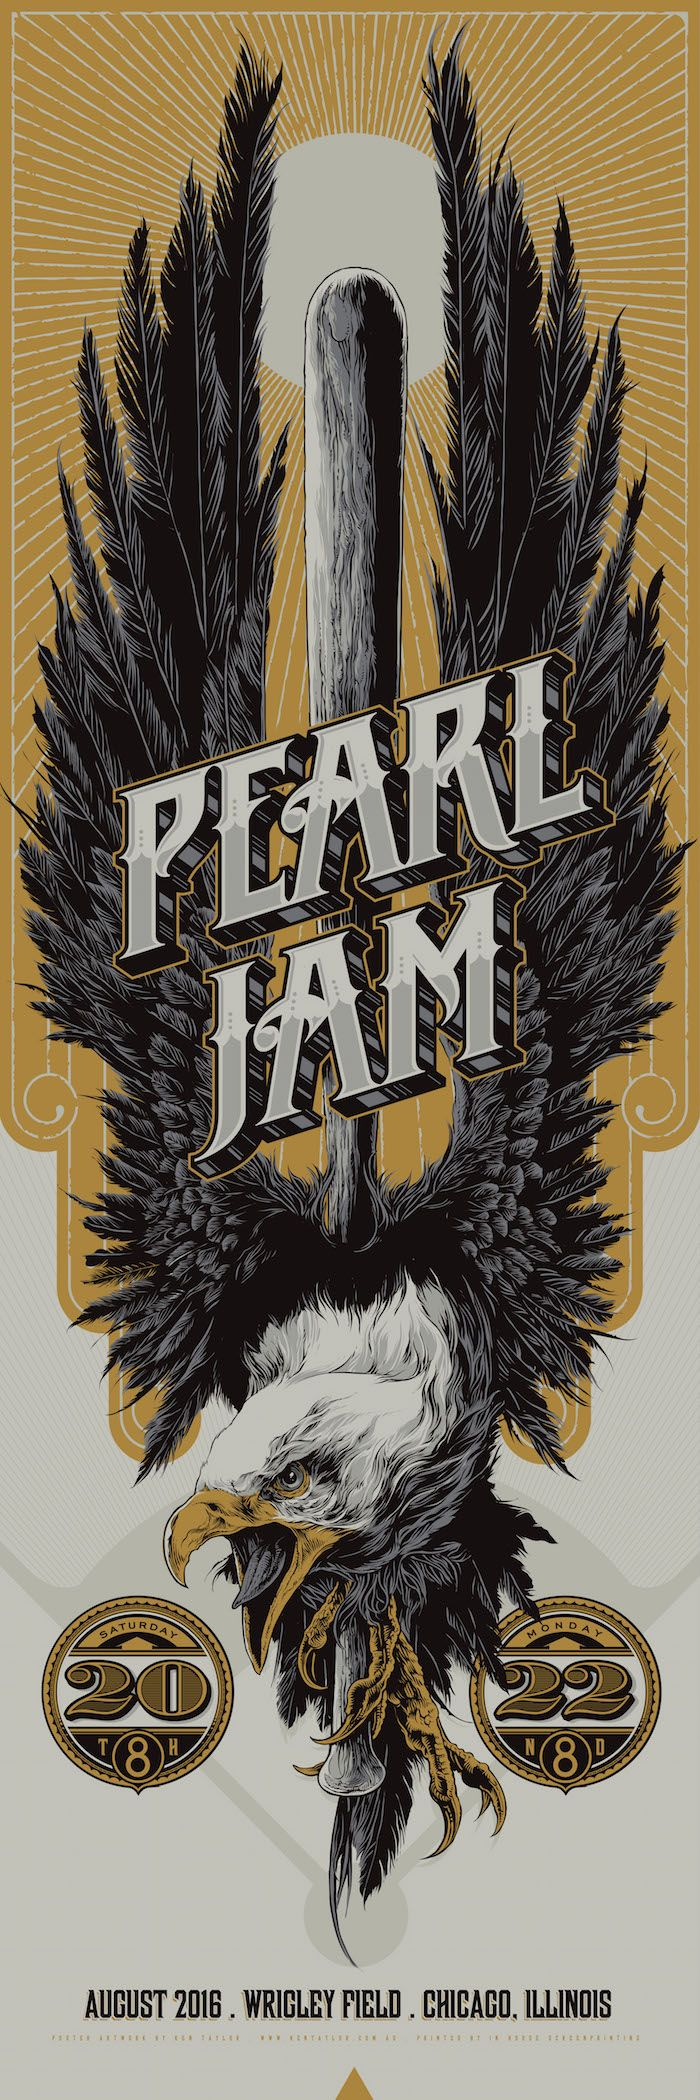 OMG Posters!  » Archive  New Posters for Pearl Jam and Dave Matthews Band by Ken Taylor